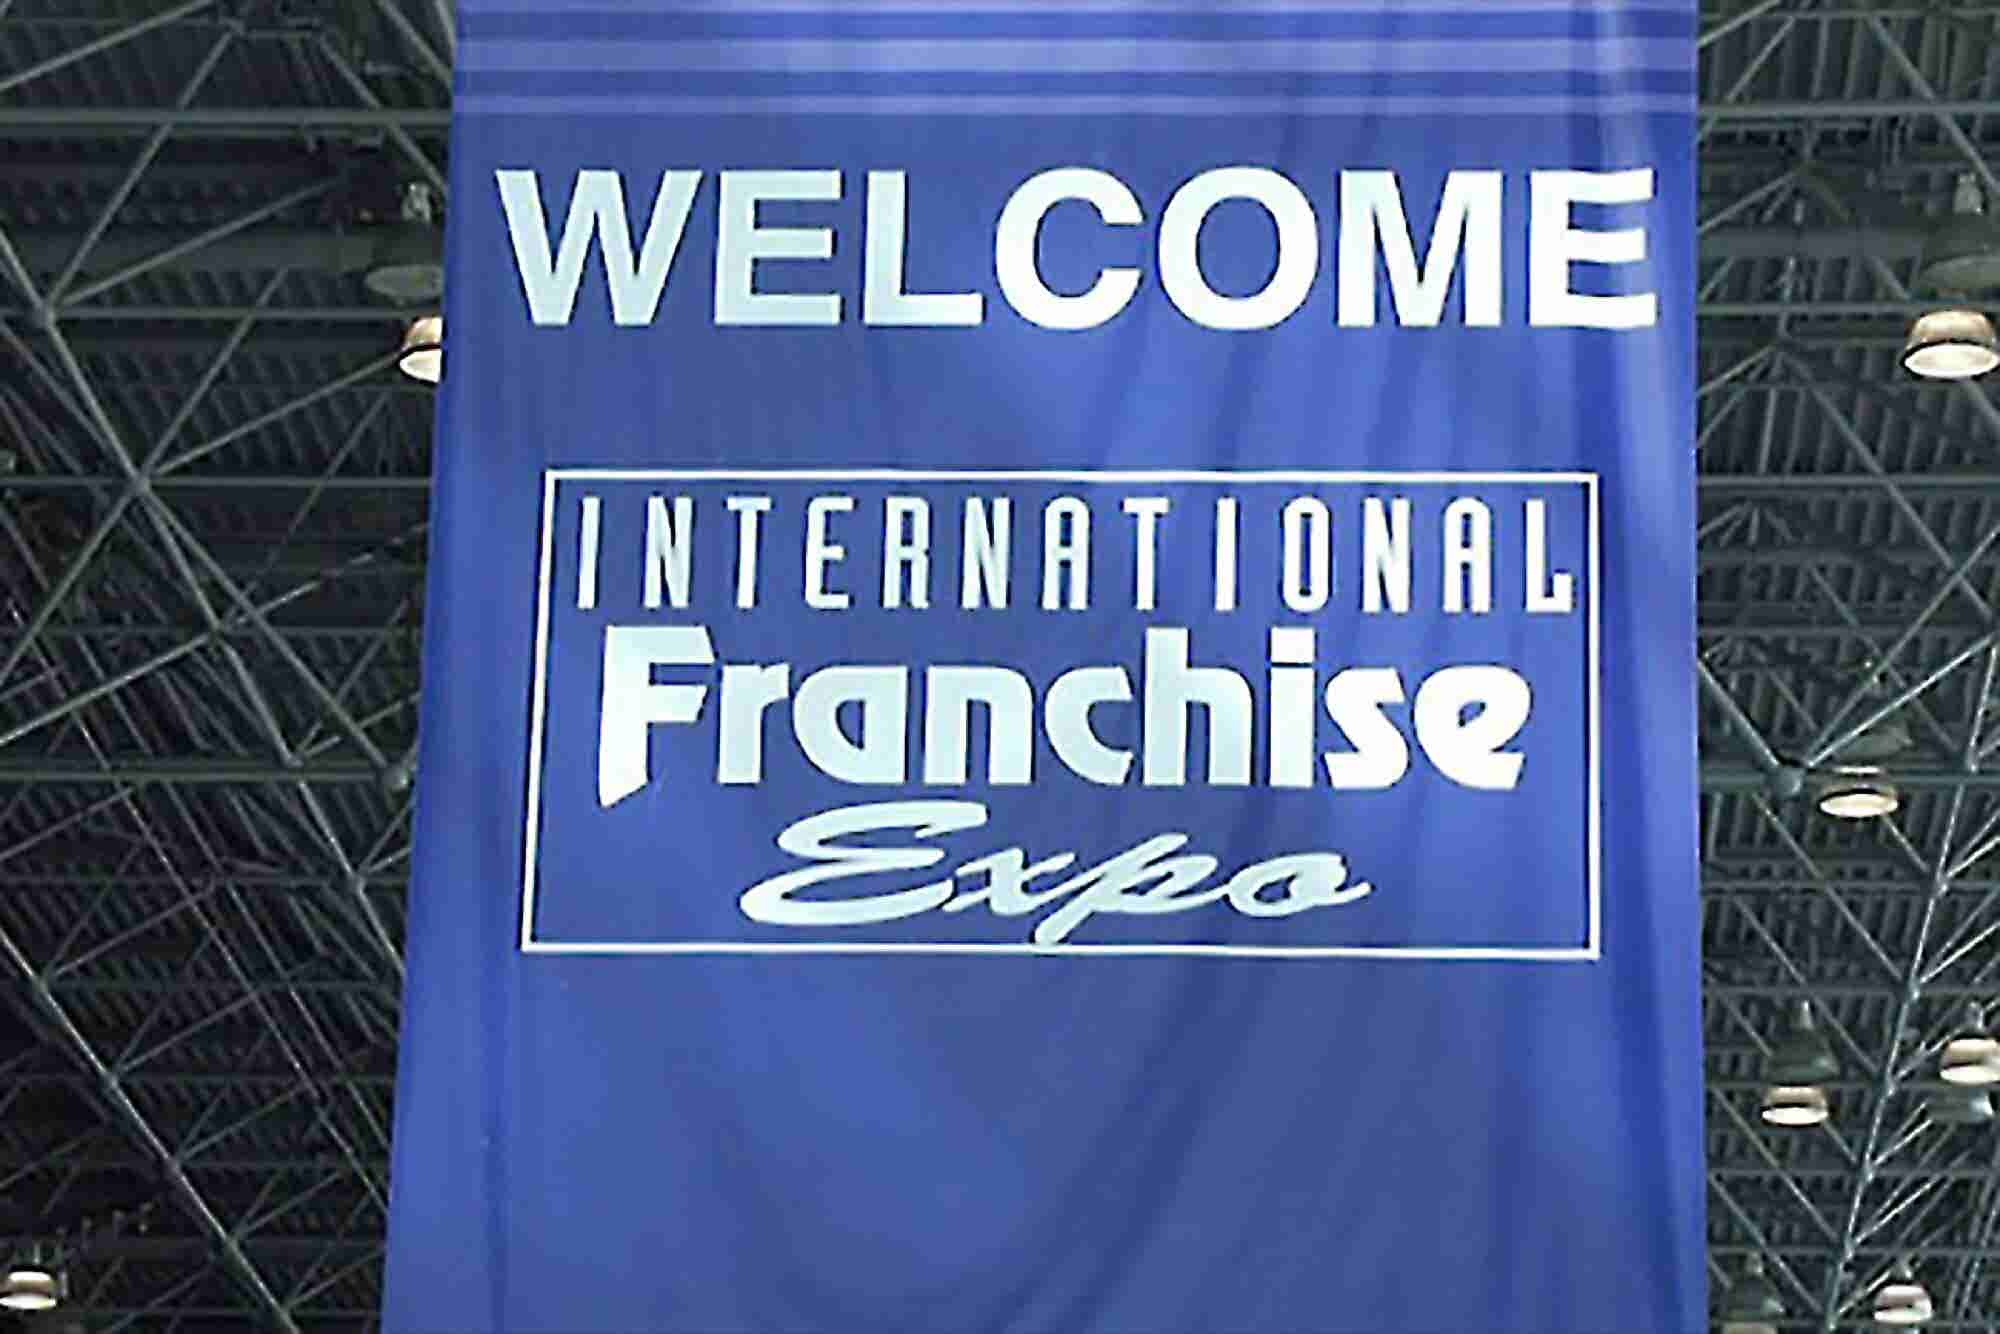 For Some, Business Search Starts at Annual International Franchise Exp...